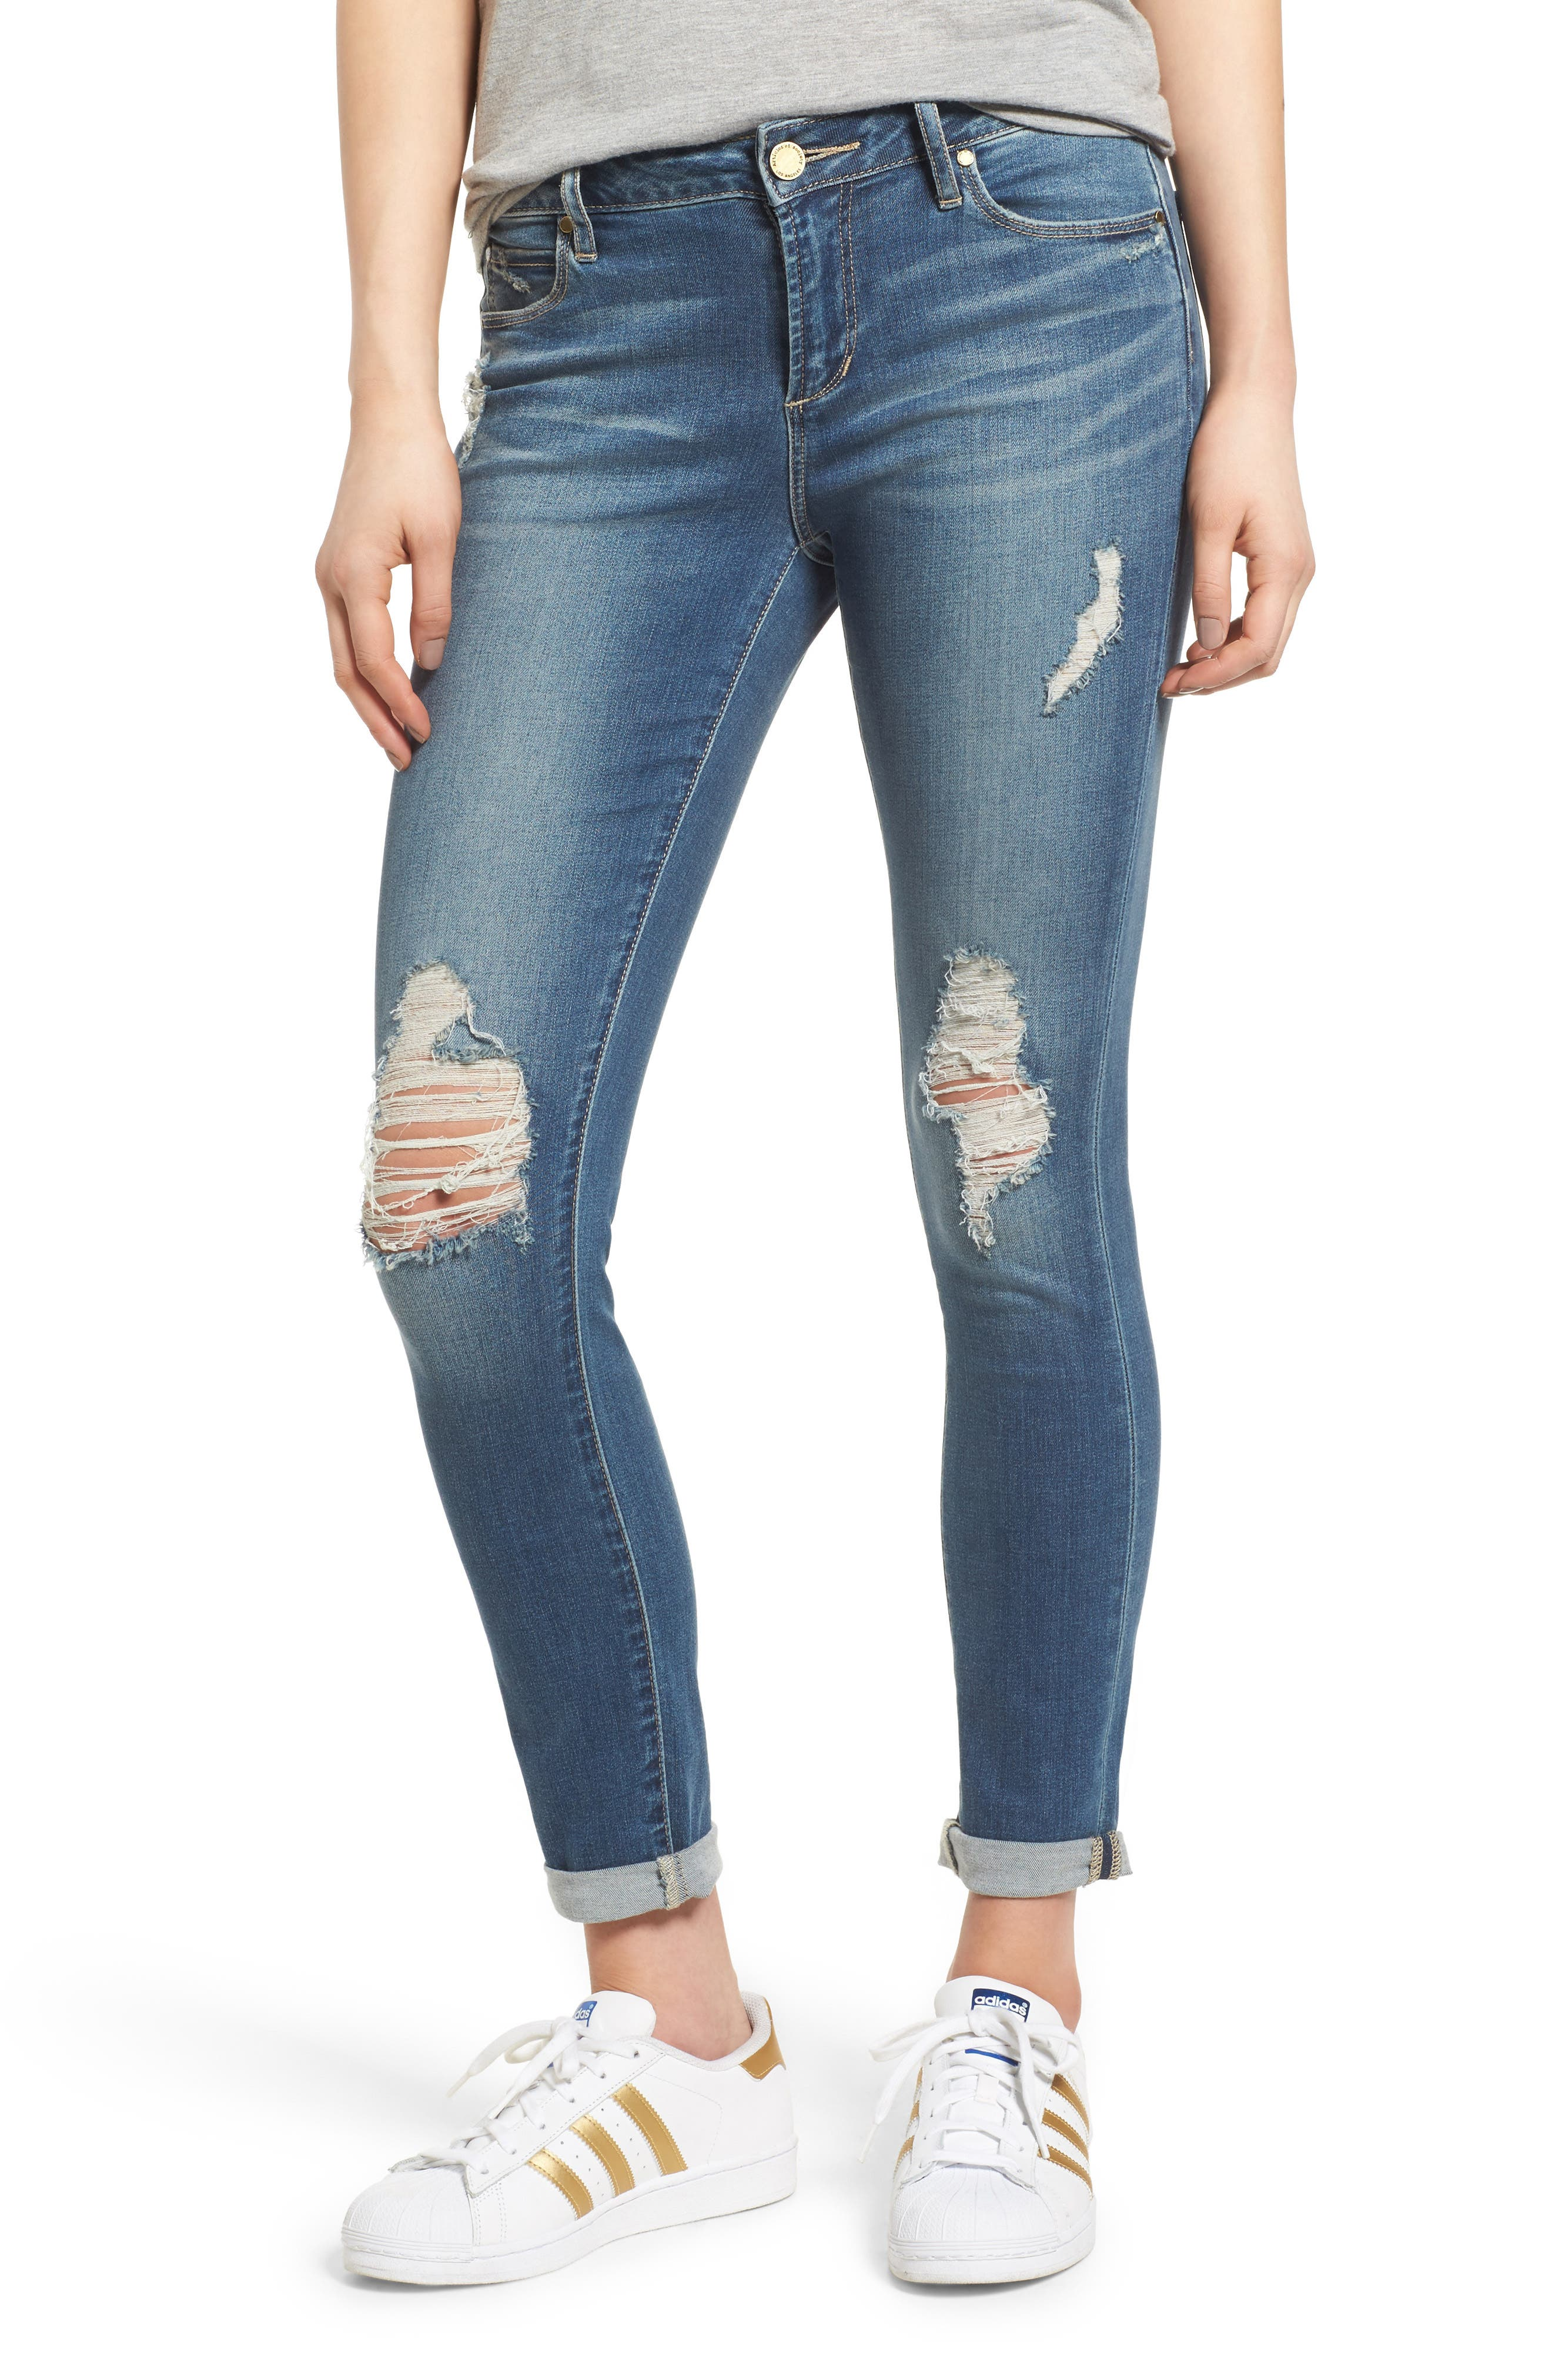 ARTICLES OF SOCIETY, Karen Ripped Crop Skinny Jeans, Main thumbnail 1, color, 400